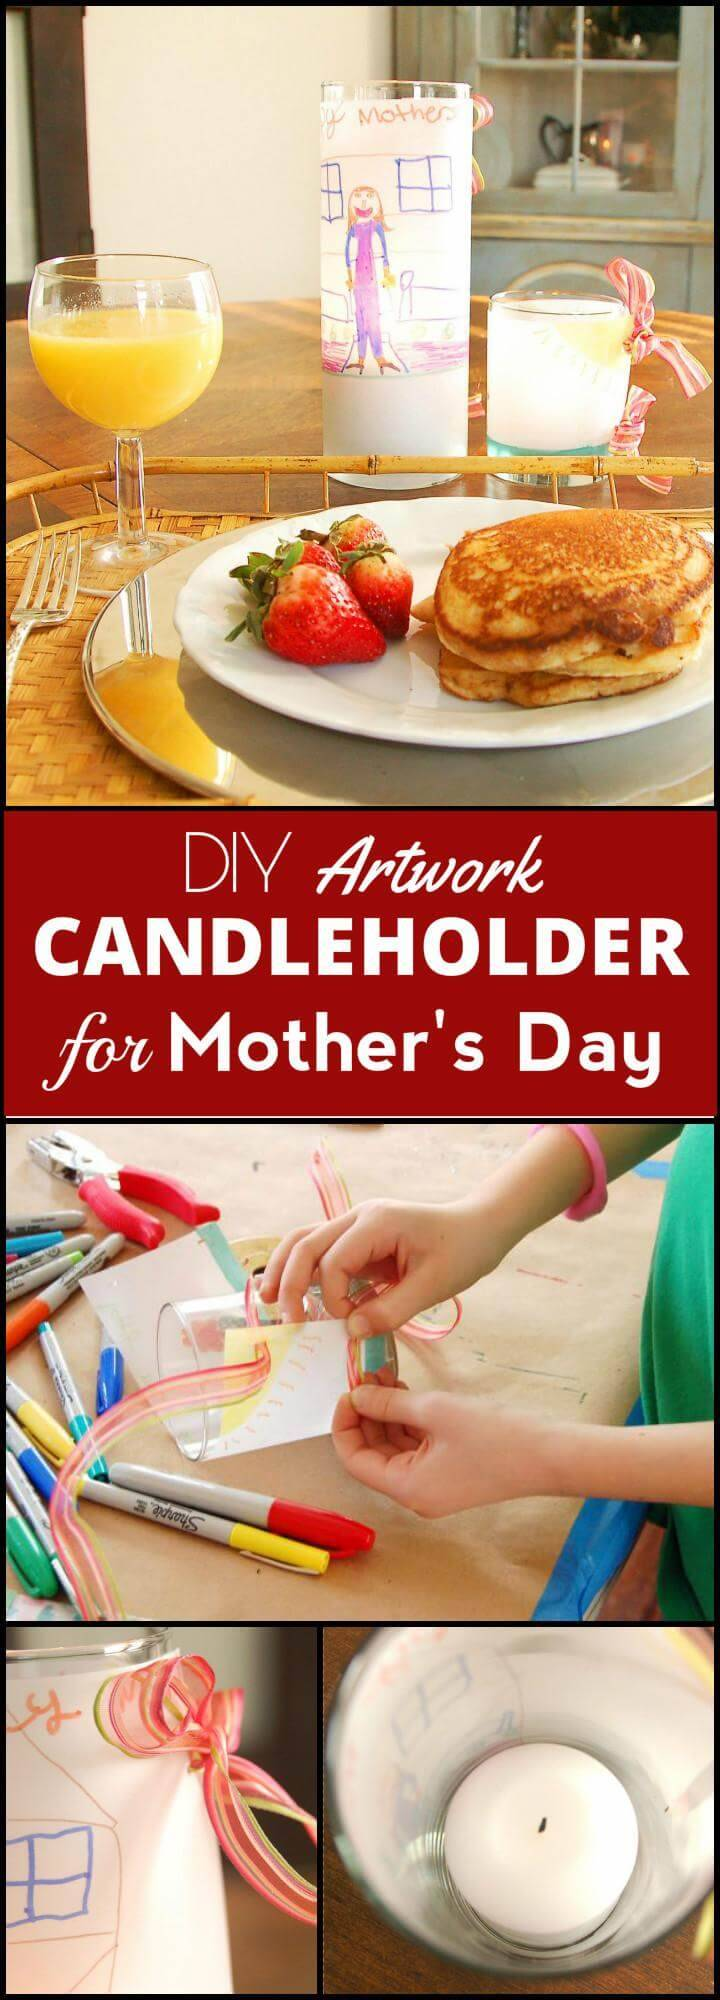 DIY artwork candleholder for Mother's Day